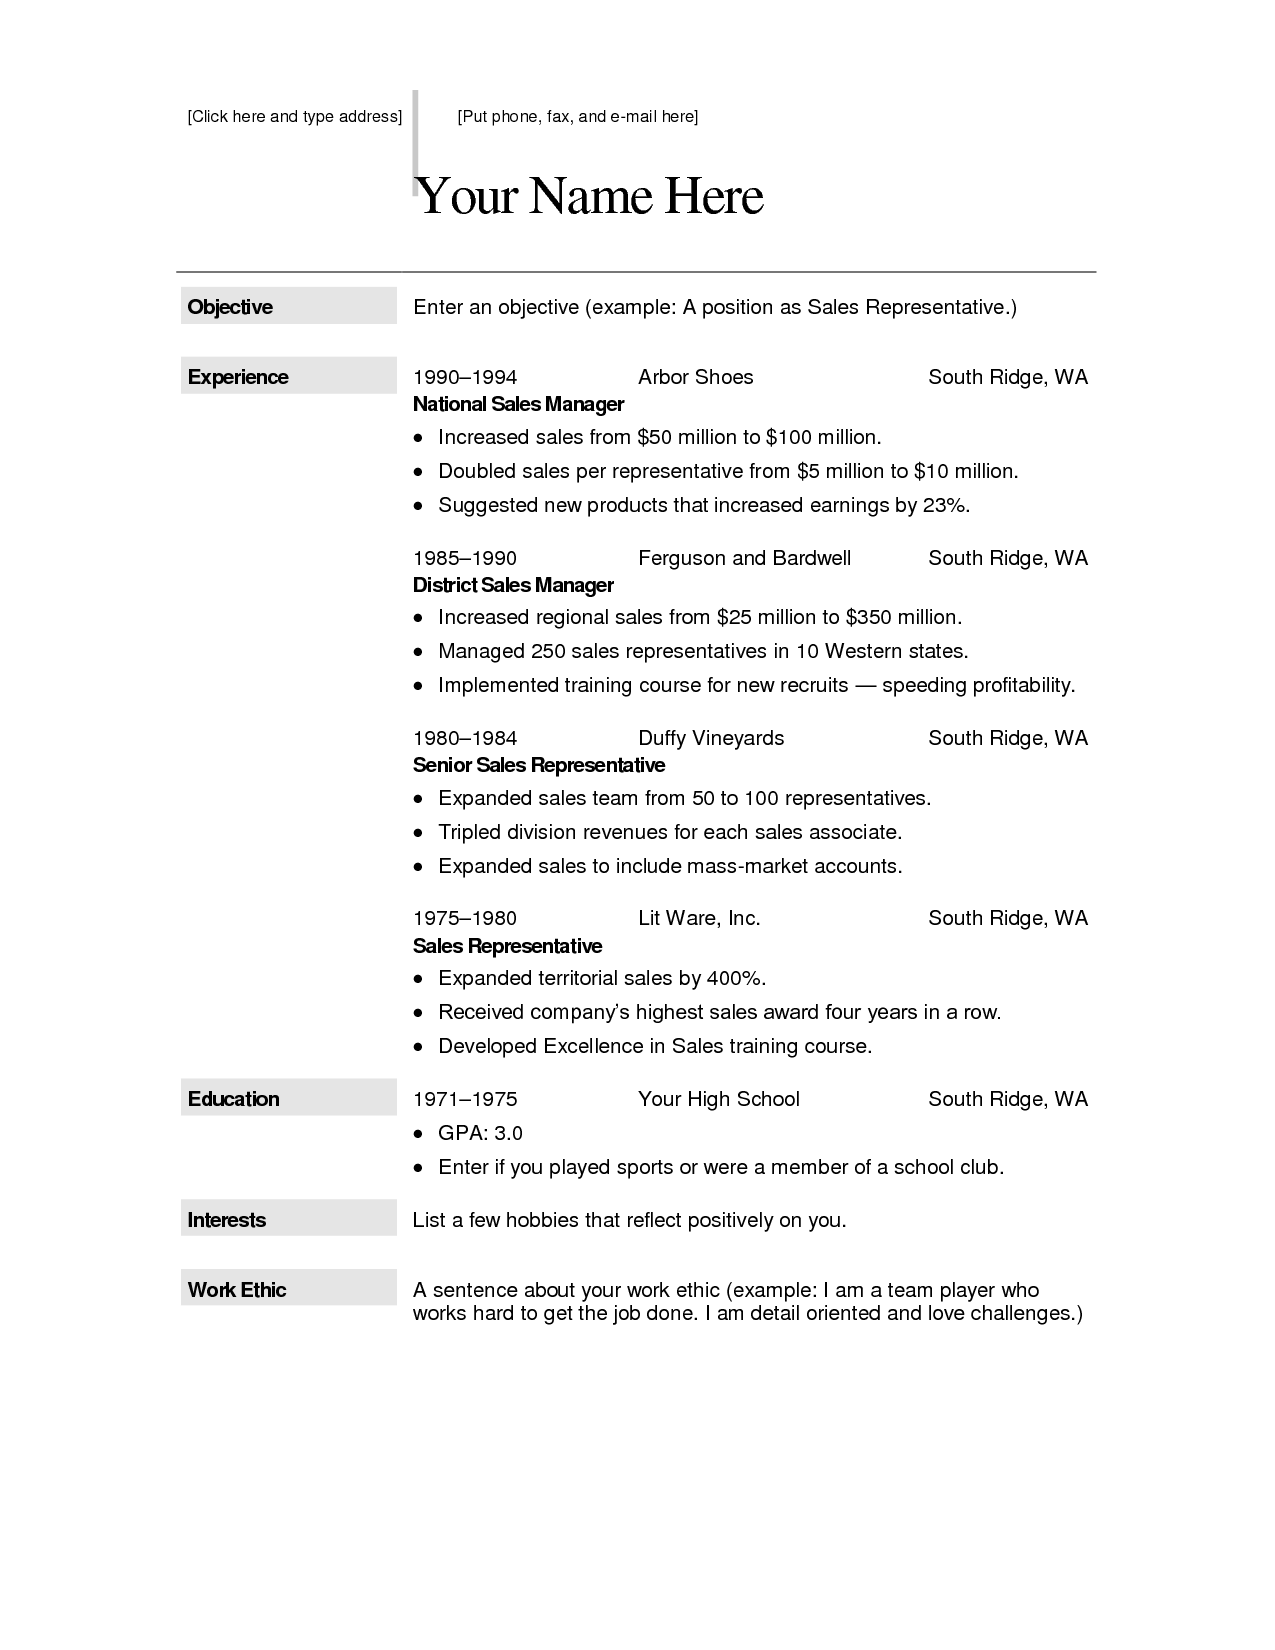 free creative resume templates for macfree creative resume templates for mac modern resume template pages resume templates clean resume template - Free Resume Templates For Pages